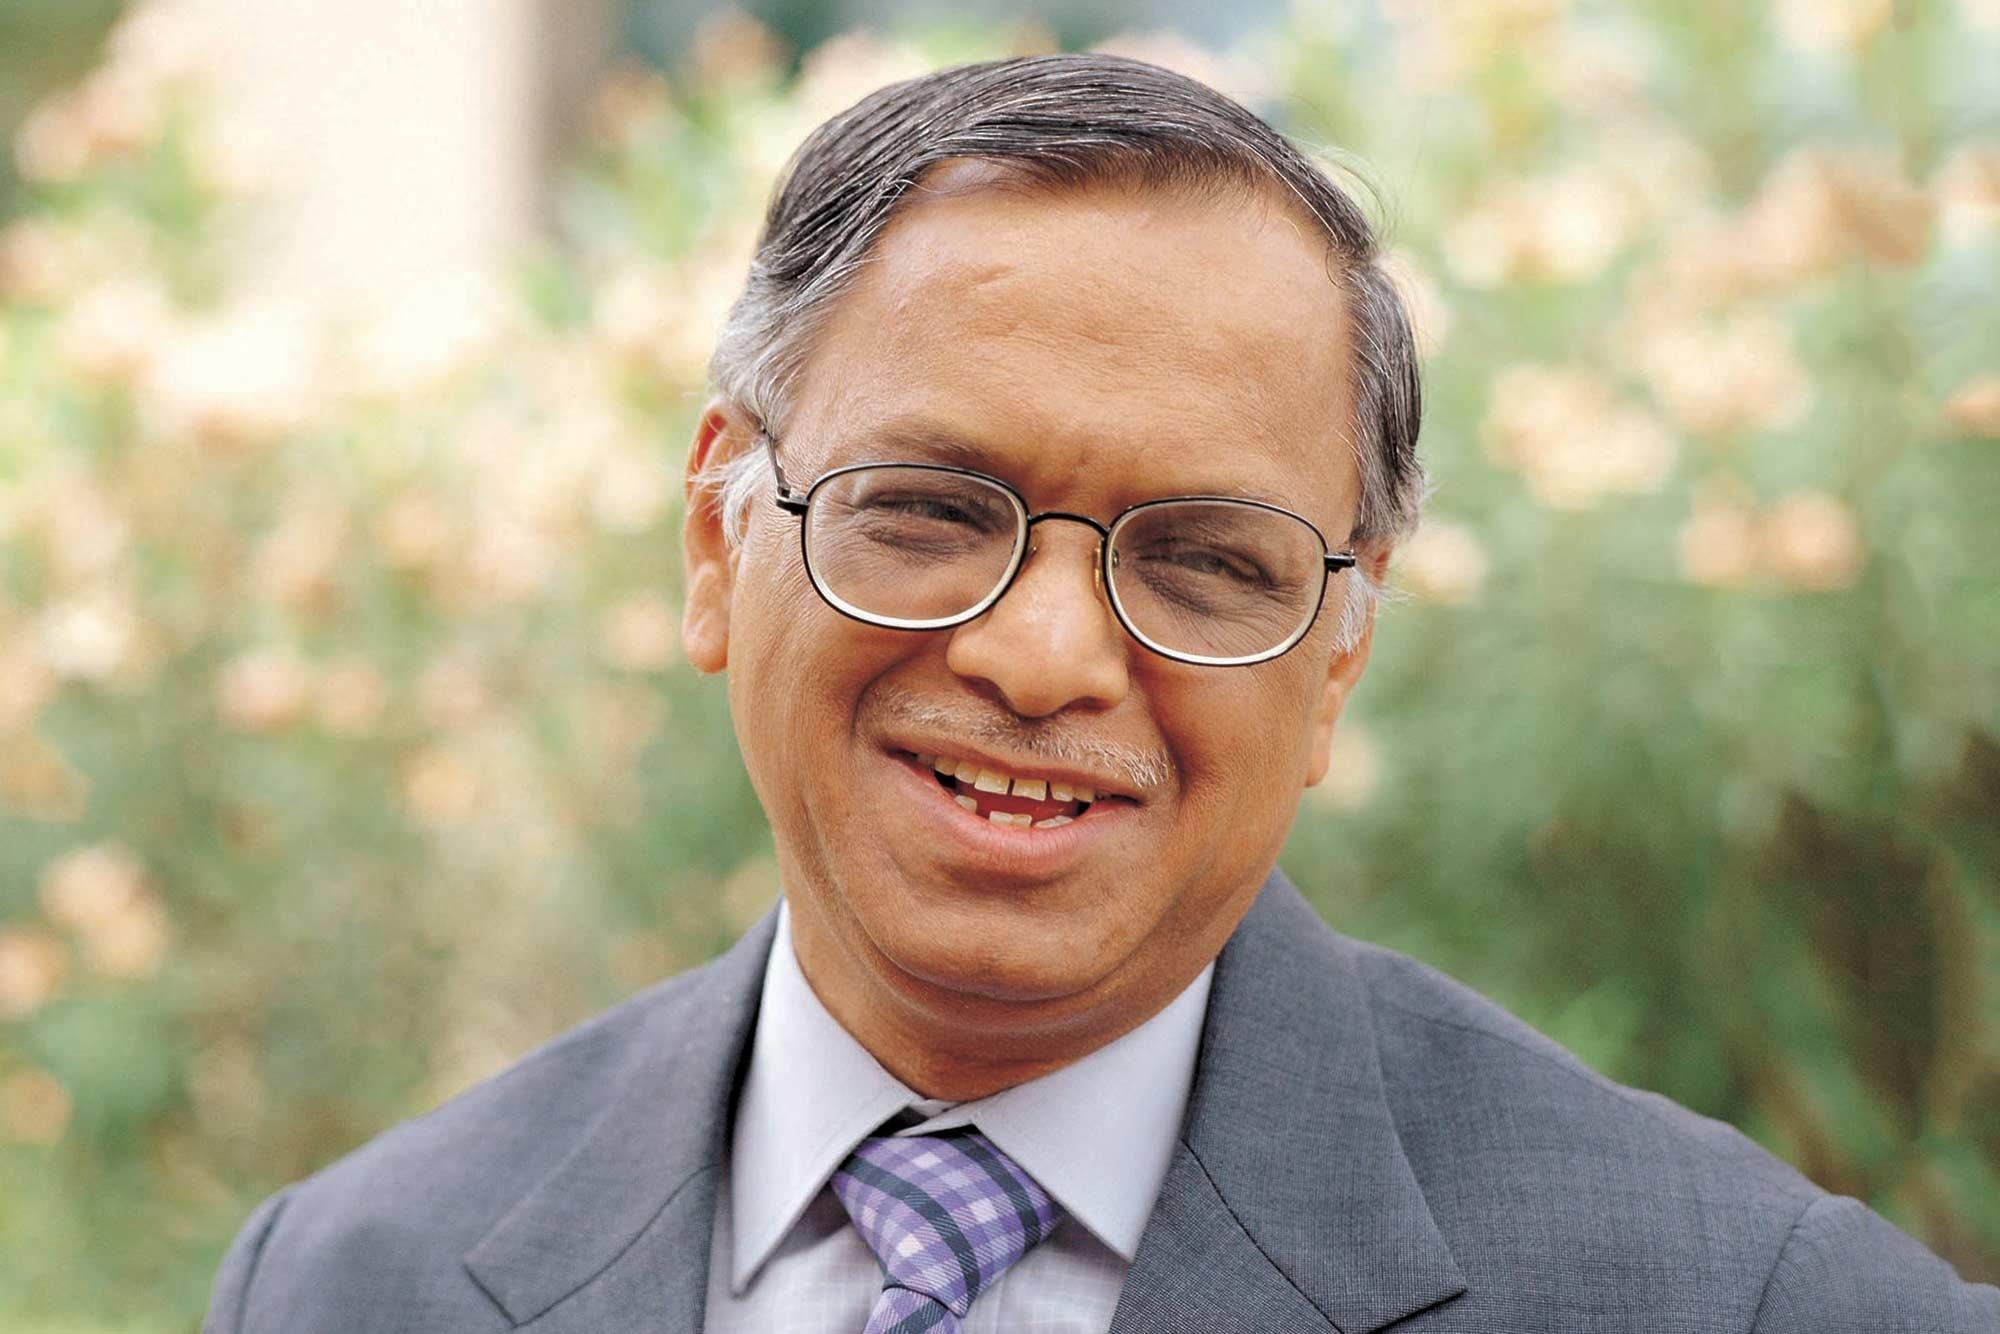 Narayana Murthy is the 2017 Thomas Jefferson Foundation Medalist in Global Innovation.